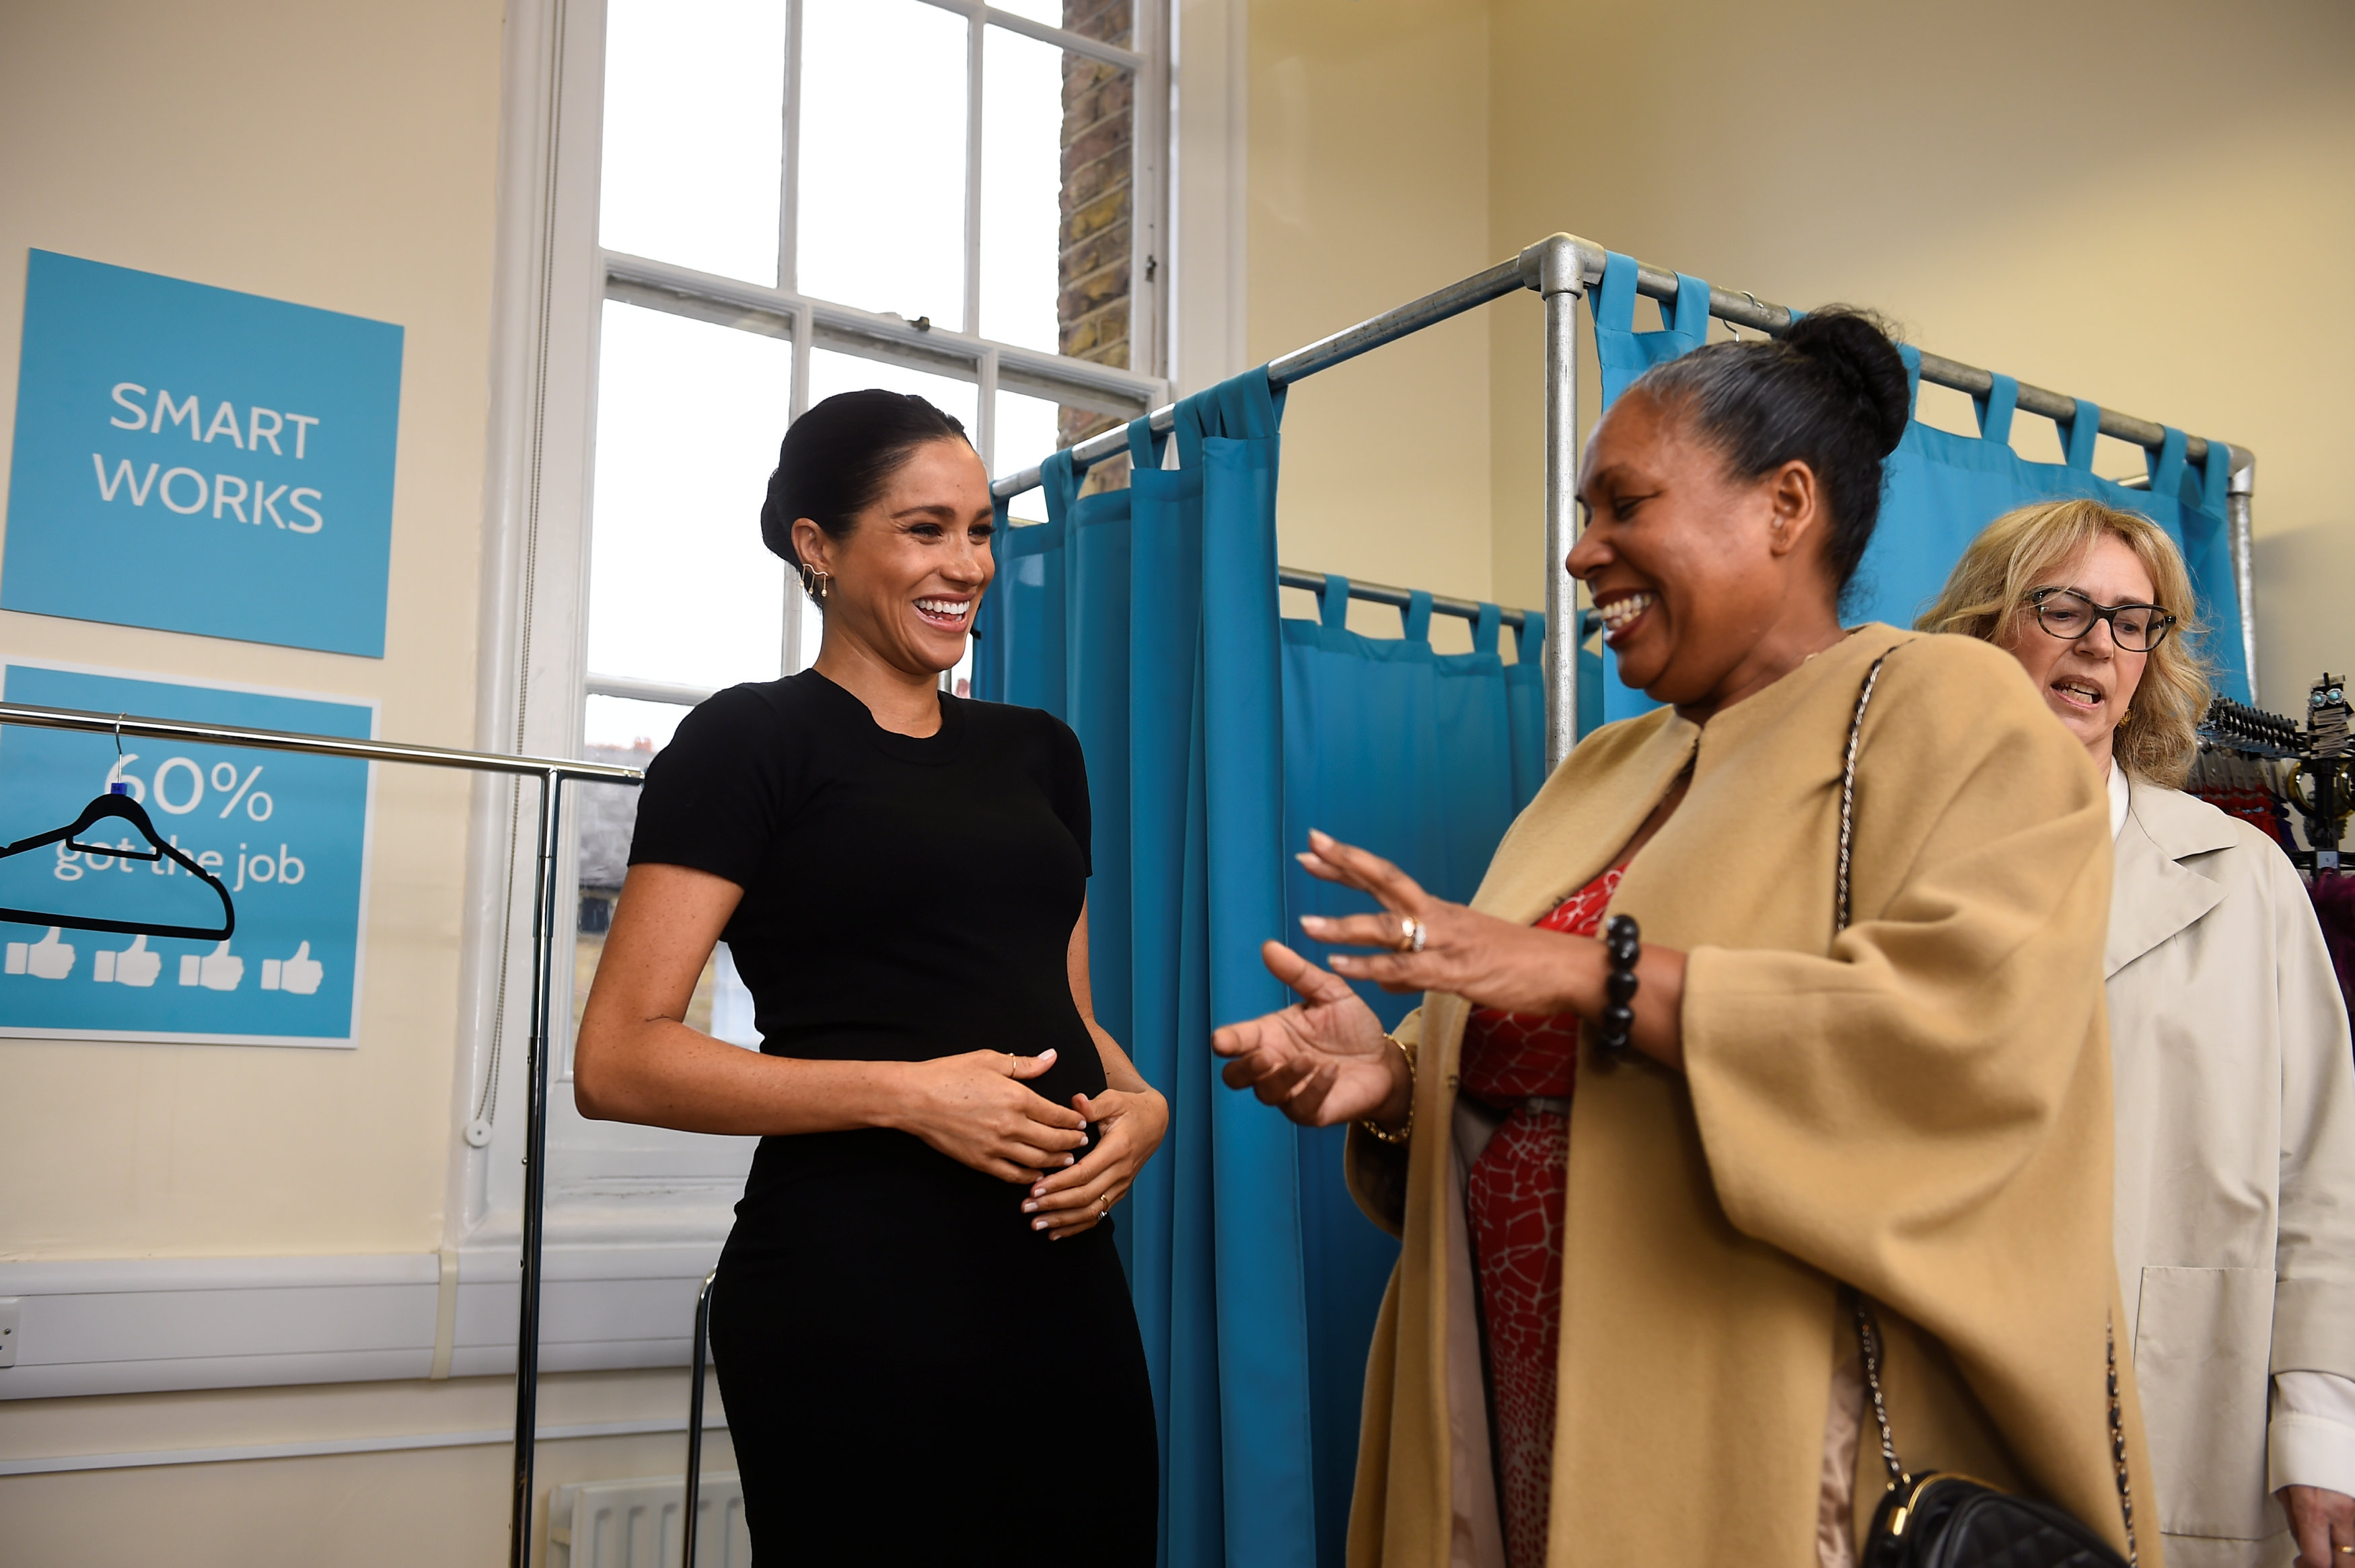 Steal Meghan Markle's Maternity Style with These Looks for Less